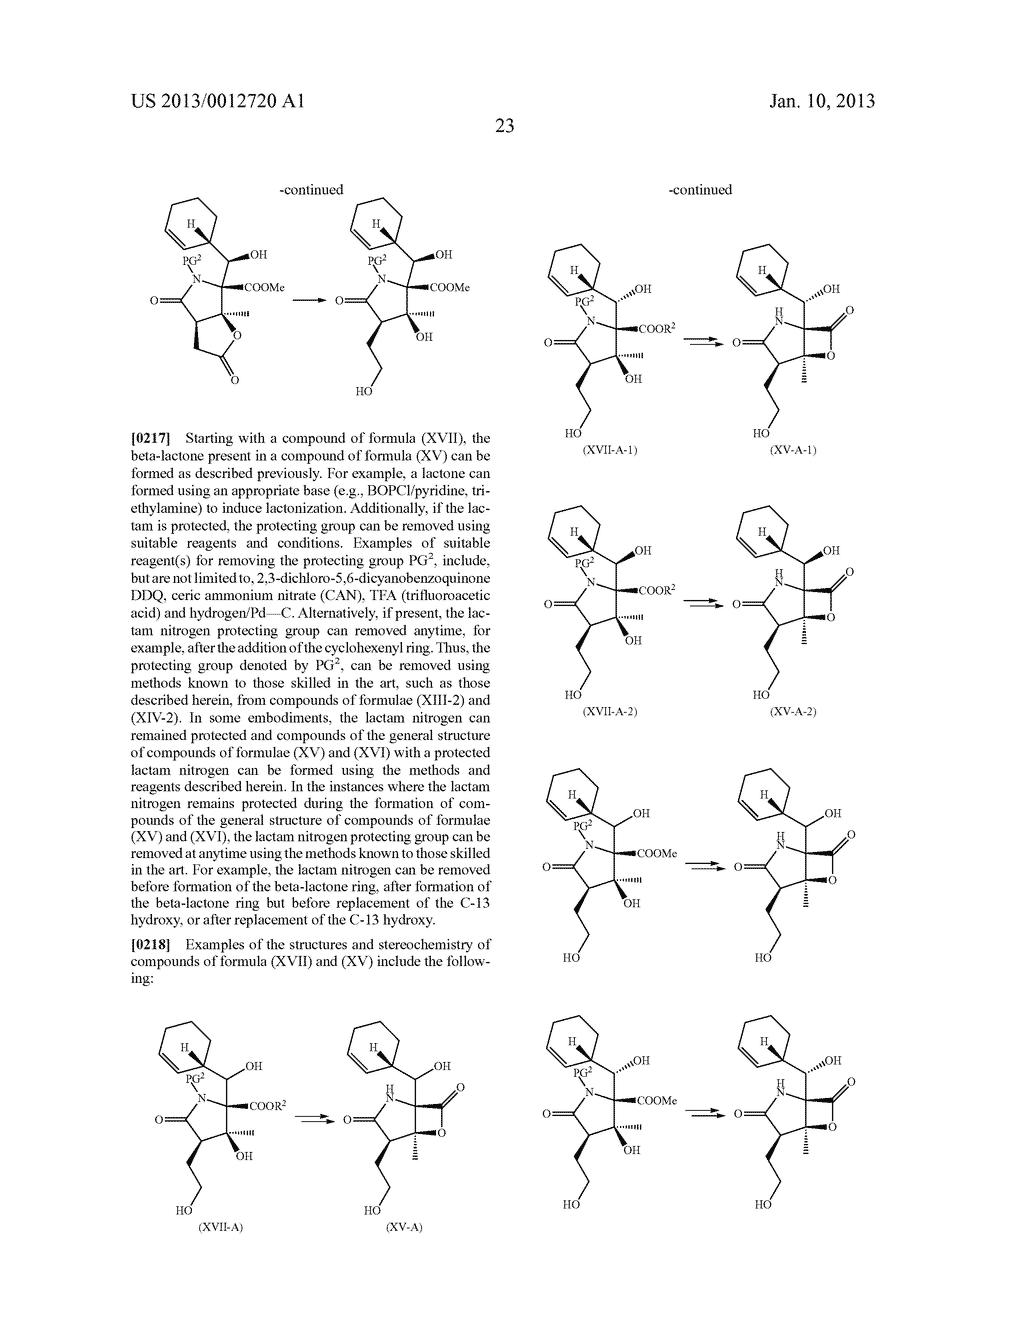 TOTAL SYNTHESIS OF SALINOSPORAMIDE A AND ANALOGS THEREOF - diagram, schematic, and image 85